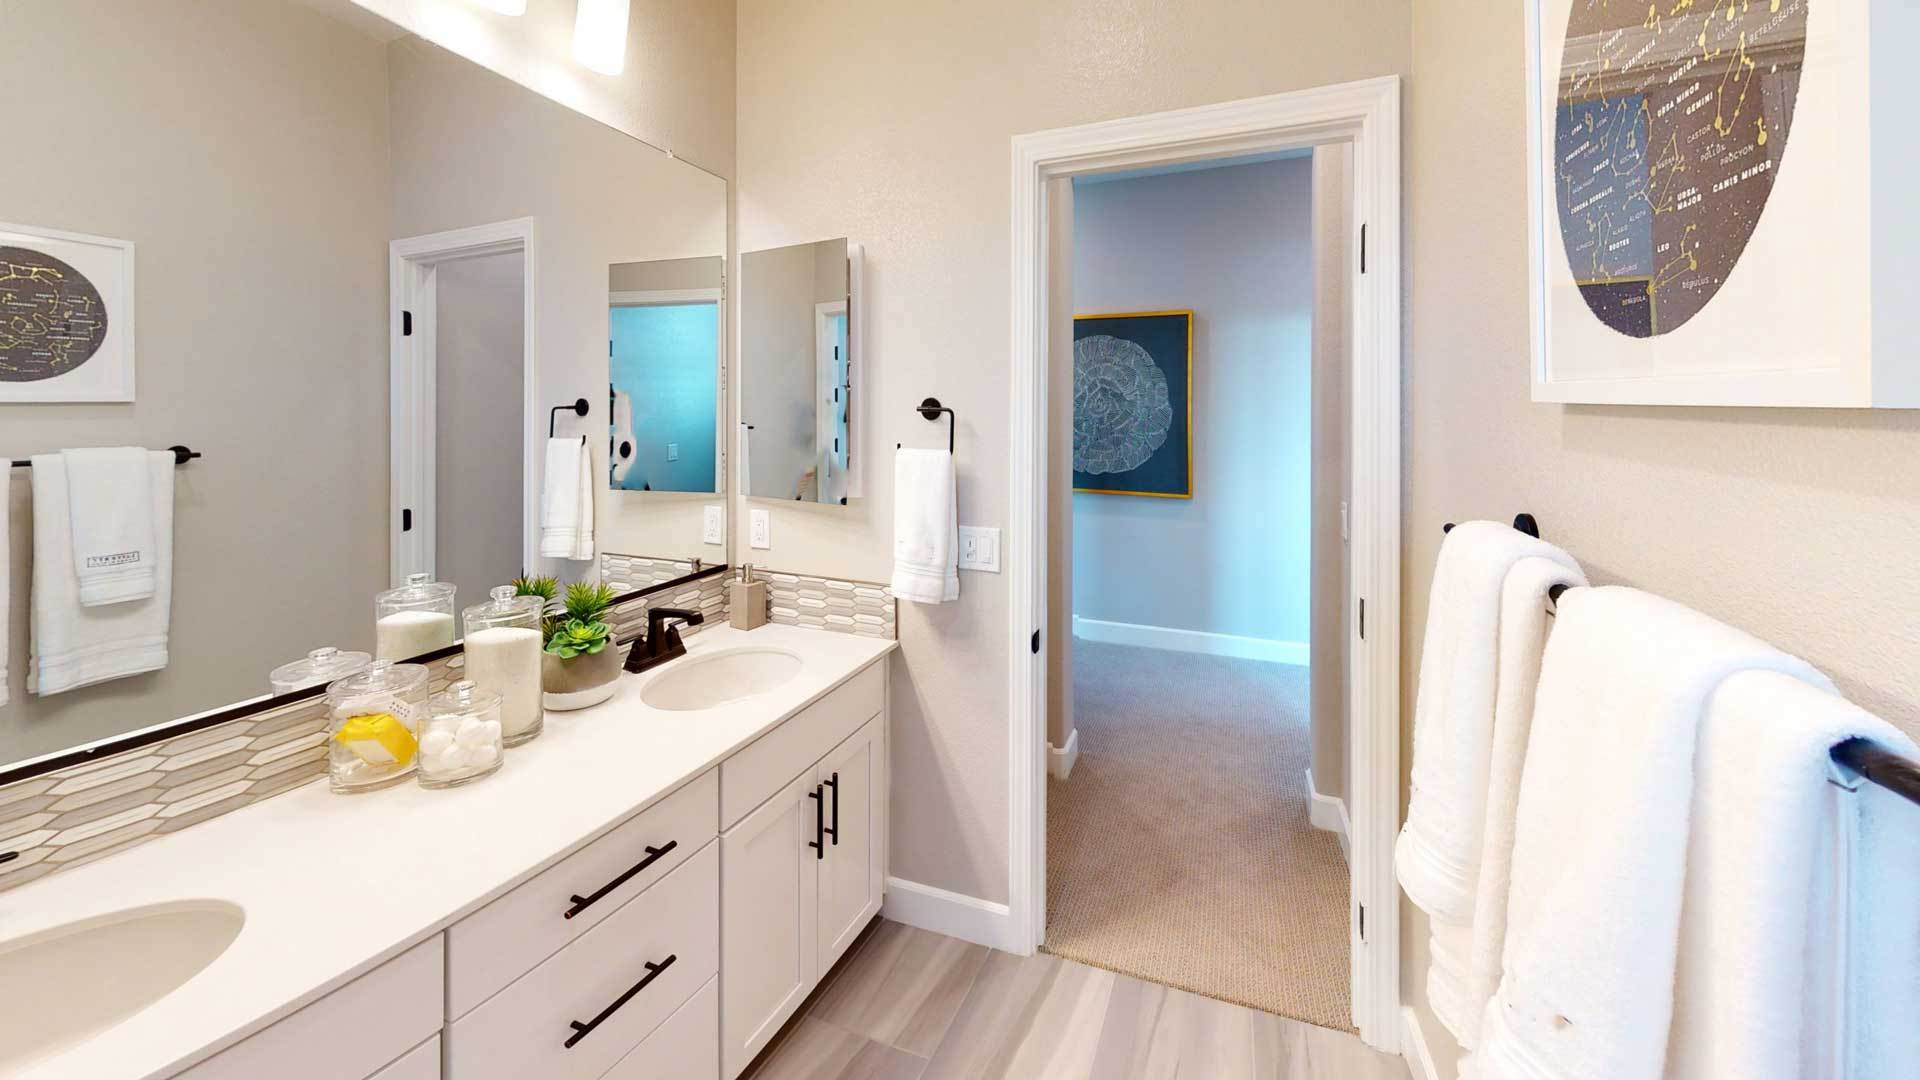 Bathroom featured in the Residence 1 By Next New Homes Group in Sacramento, CA